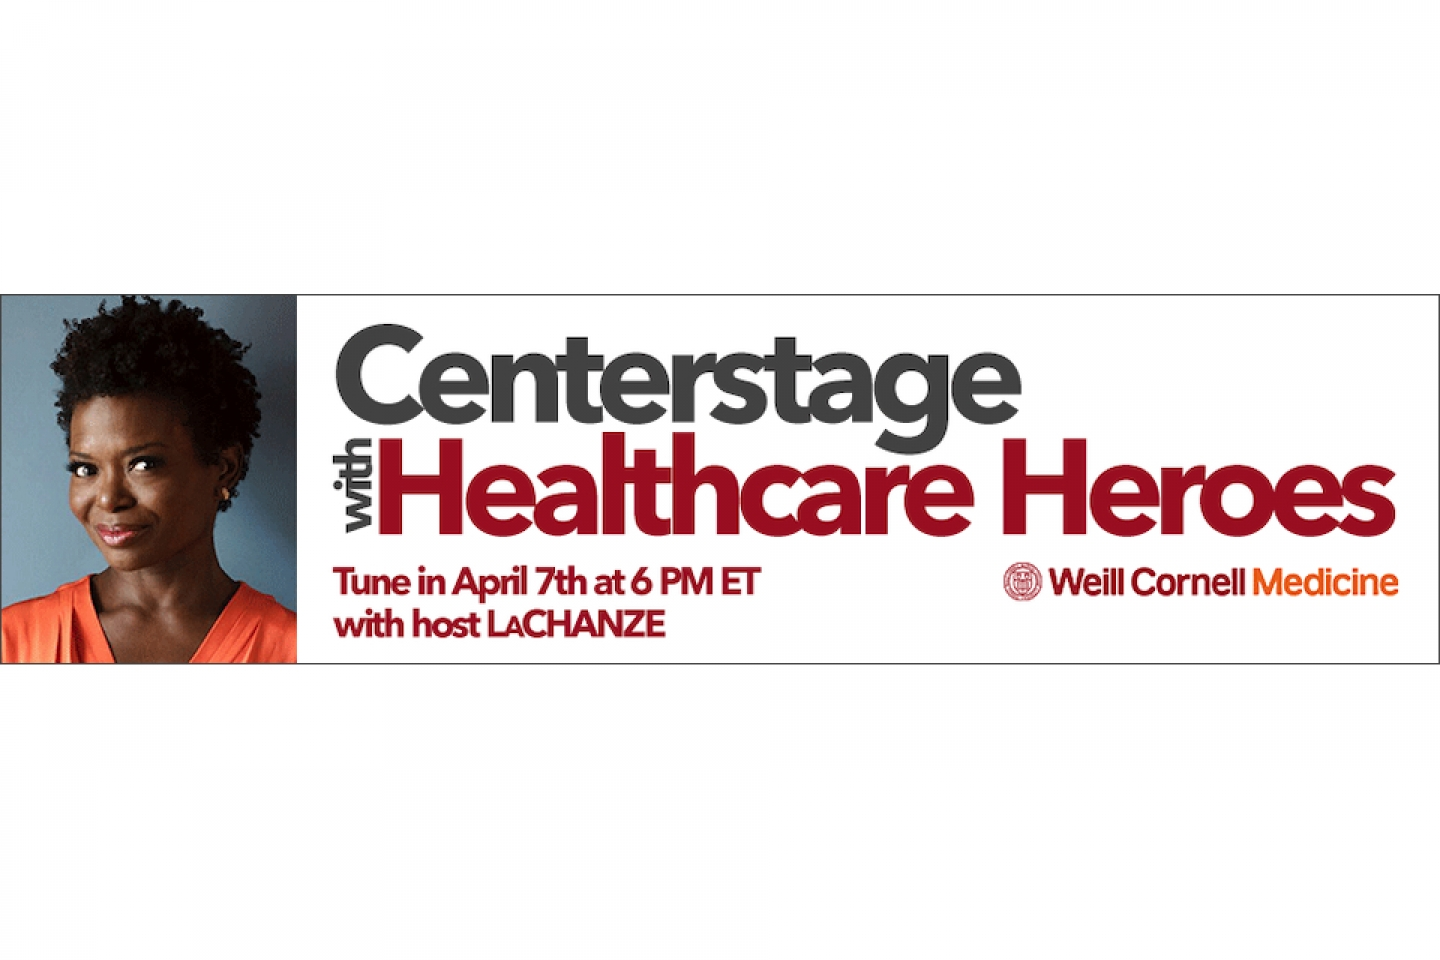 centerstage with healthcare heroes with LaChanze